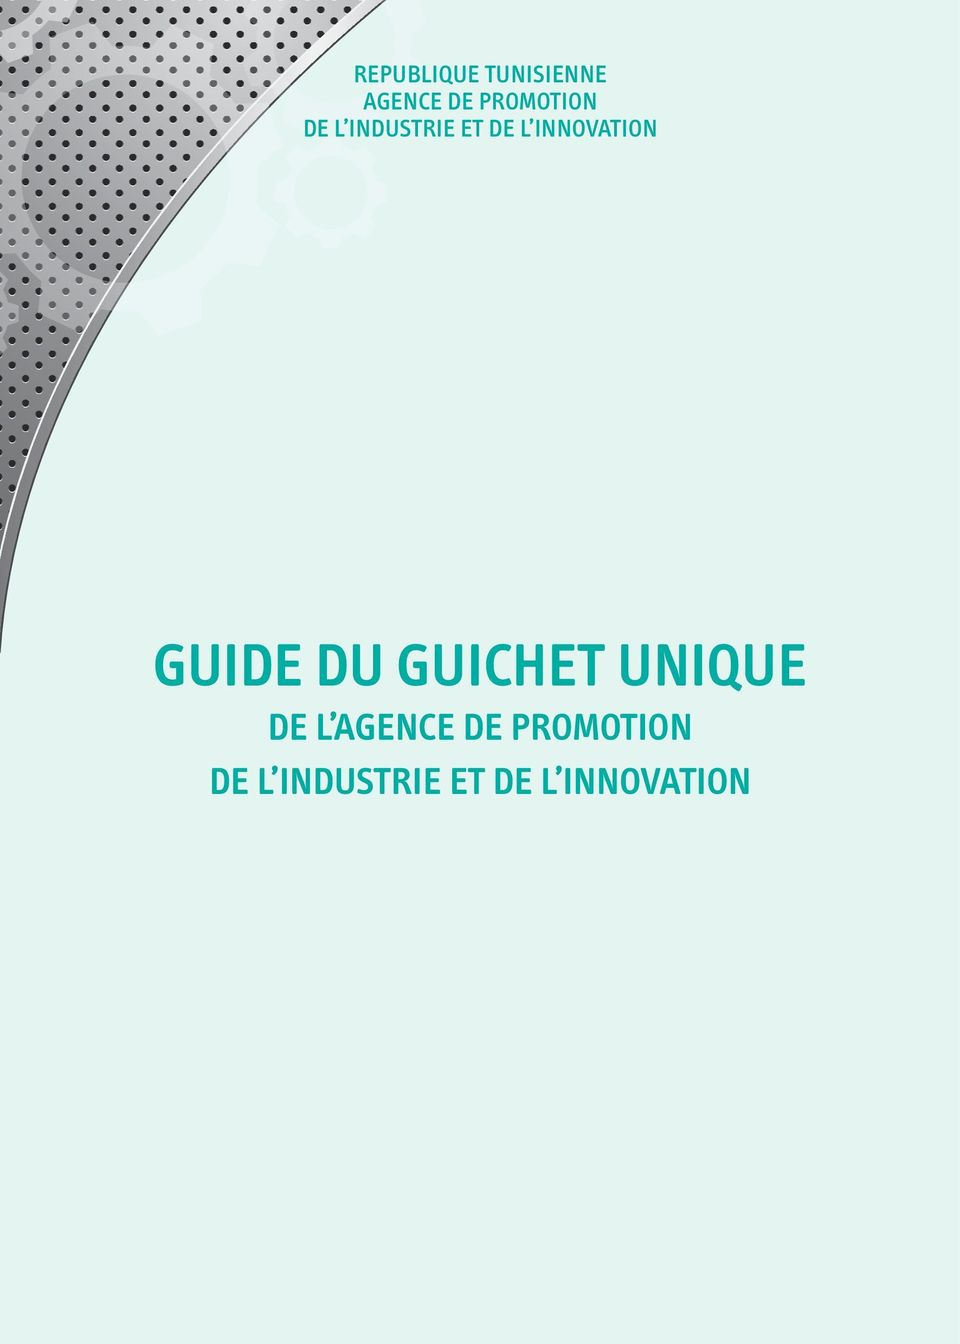 INNOVATION GUIDE DU GUICHET UNIQUE DE L